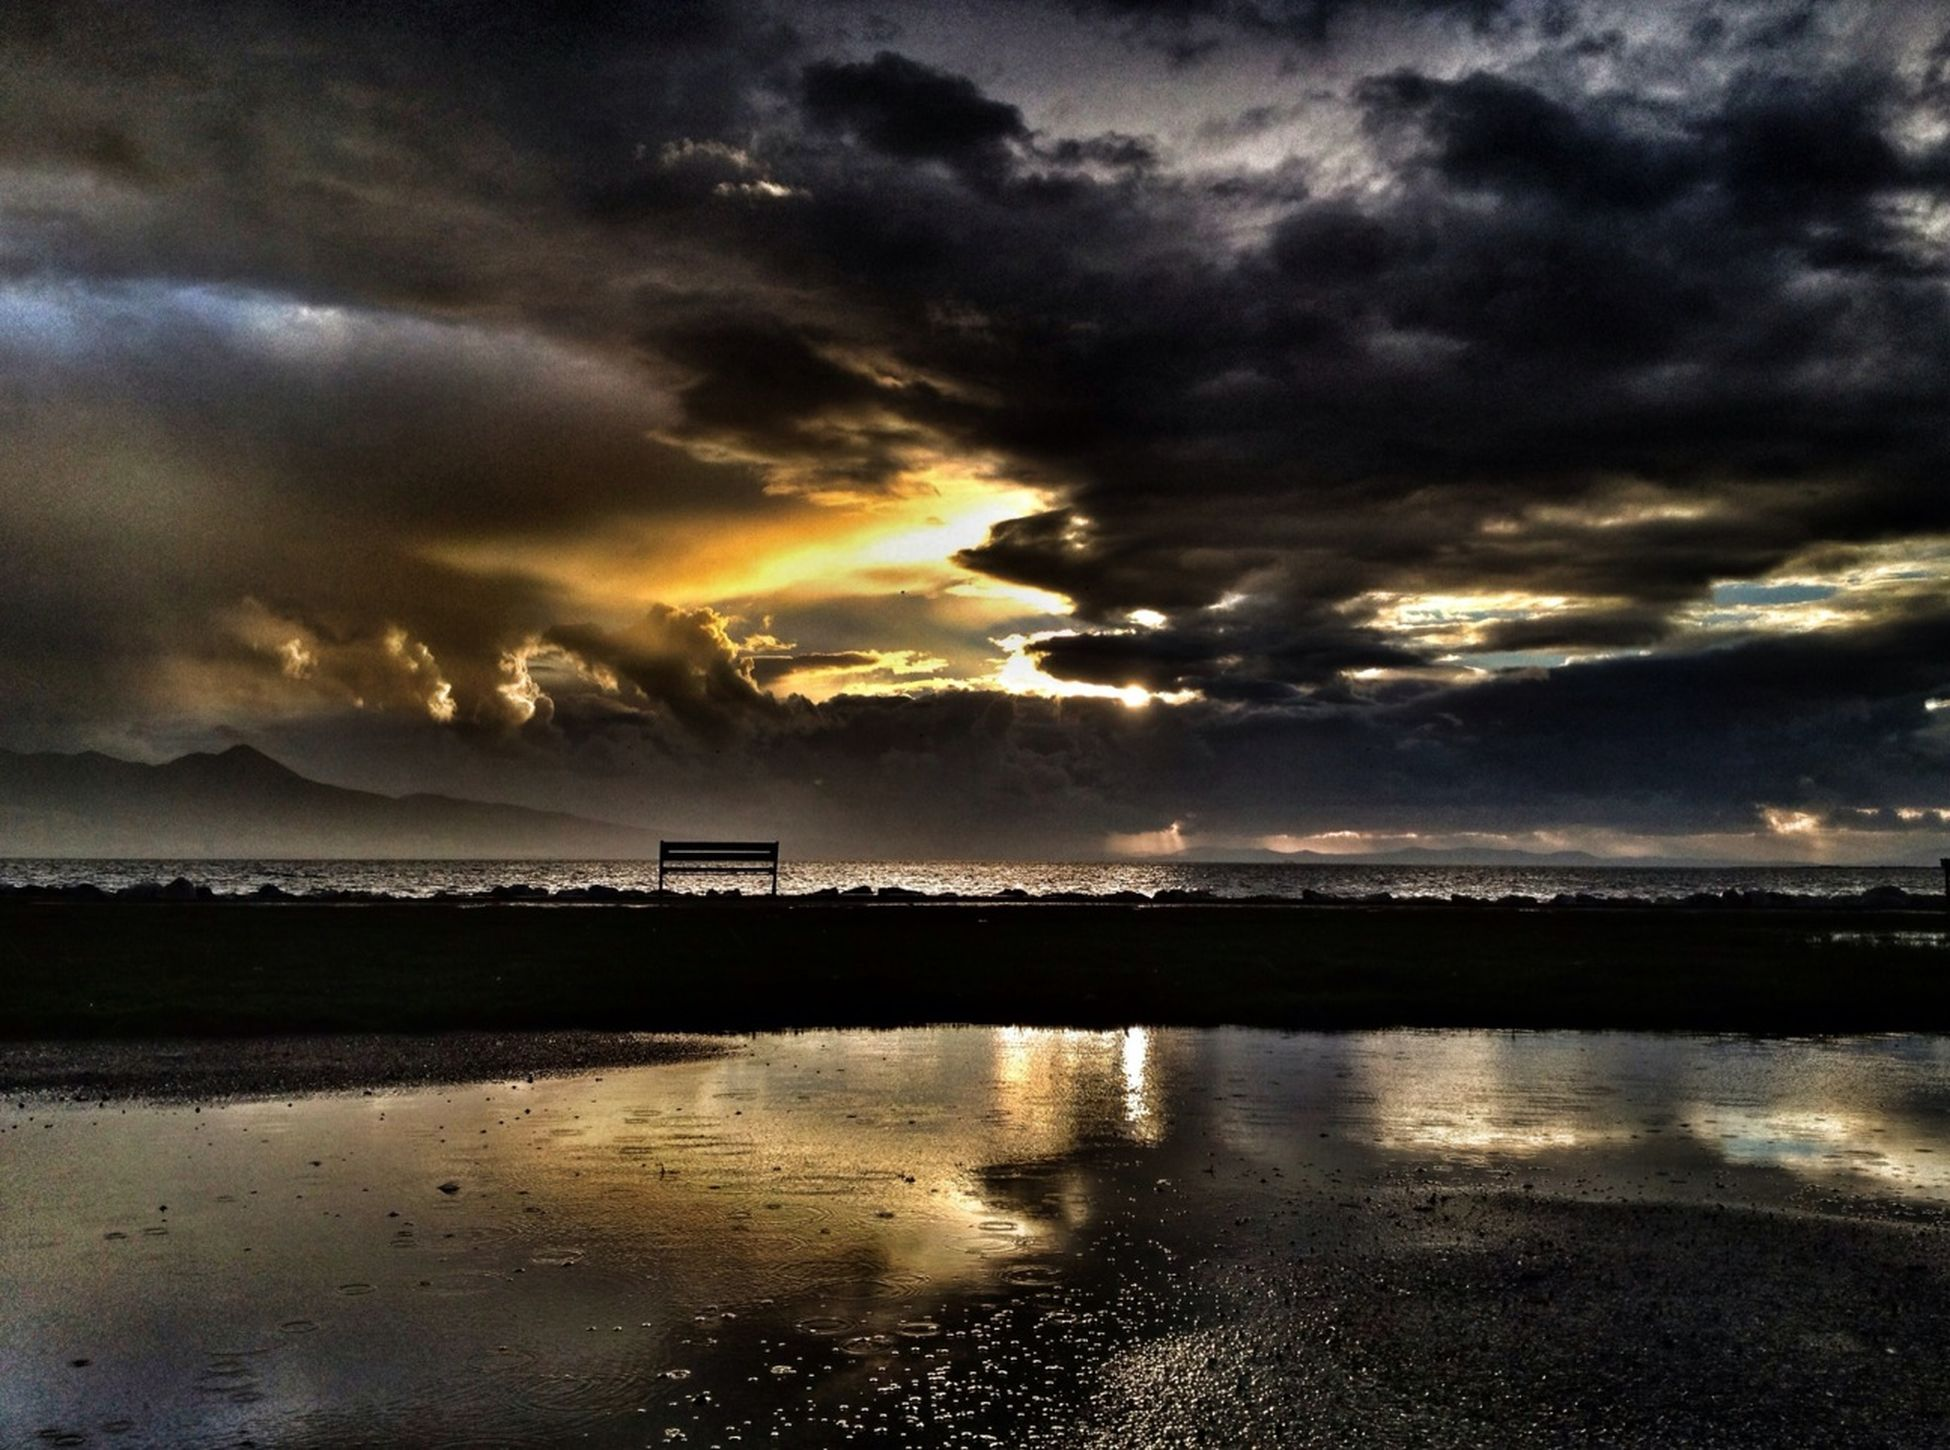 water, sunset, sky, cloud - sky, scenics, tranquil scene, tranquility, cloudy, reflection, beauty in nature, sea, dramatic sky, weather, nature, idyllic, cloud, atmospheric mood, overcast, beach, waterfront